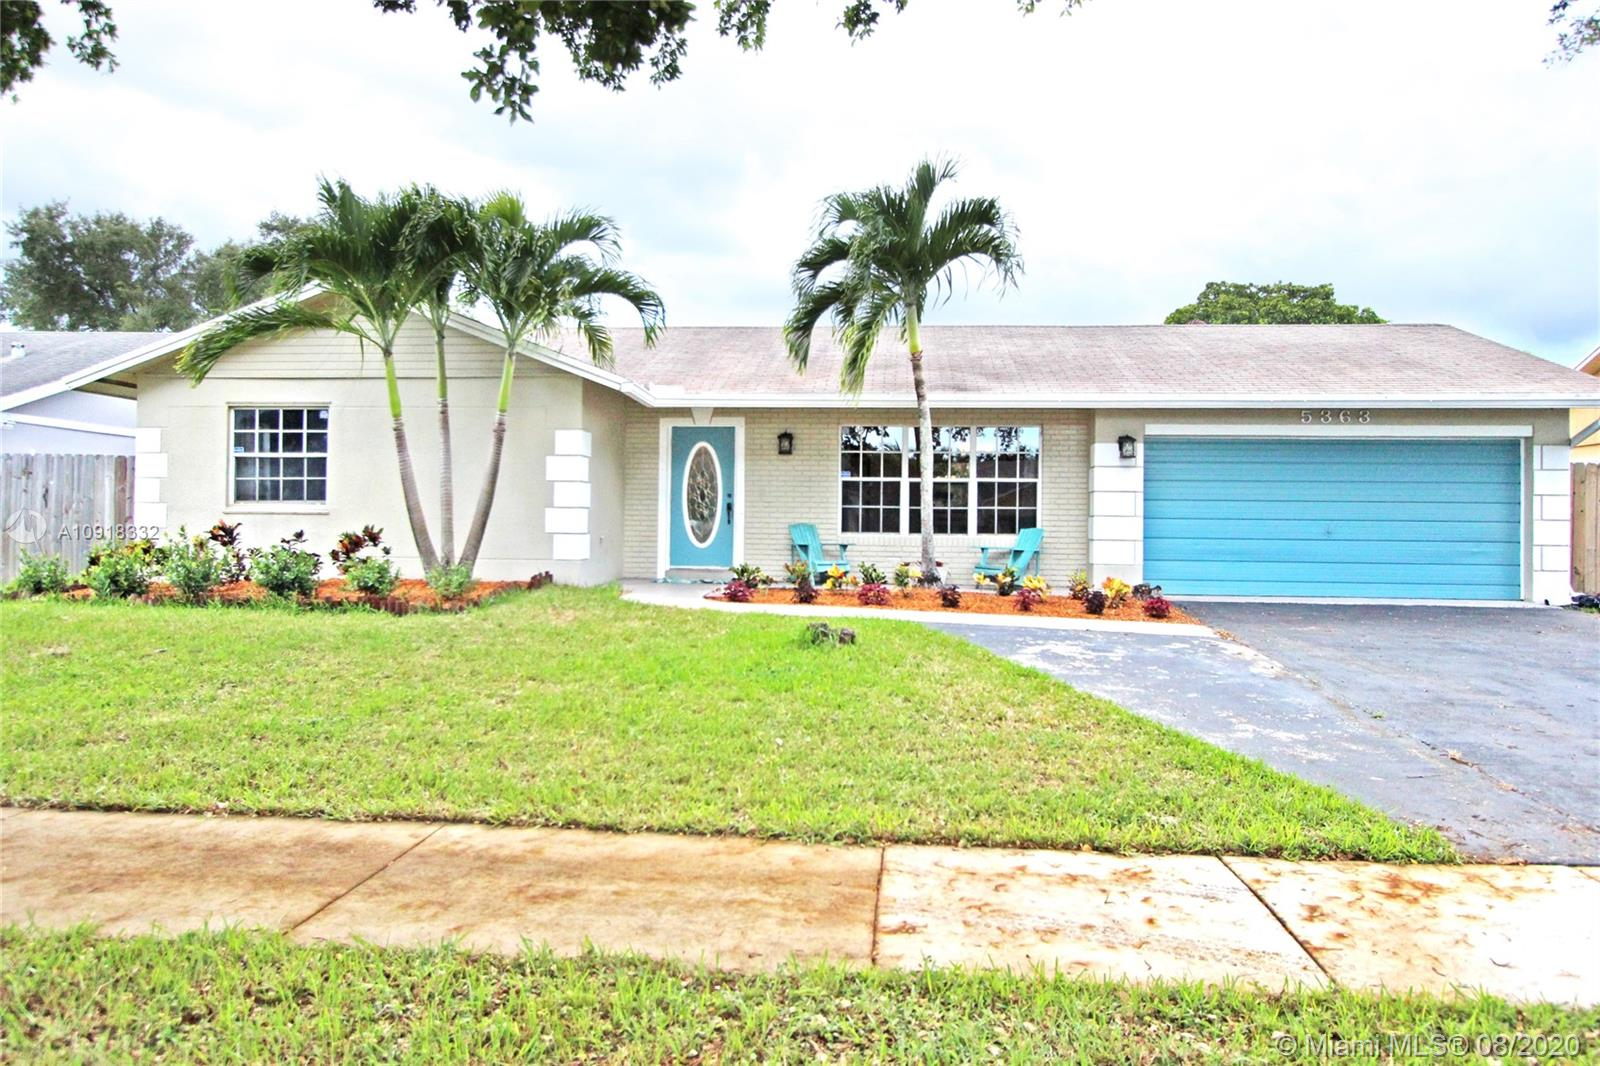 3 bedrooms 2 bathrooms, 2 car garage, pool, tiki hut, outside back patio, closed in back patio, and a lot of guess parking. Located in Cooper City Flamingo Gardens West neighborhood.